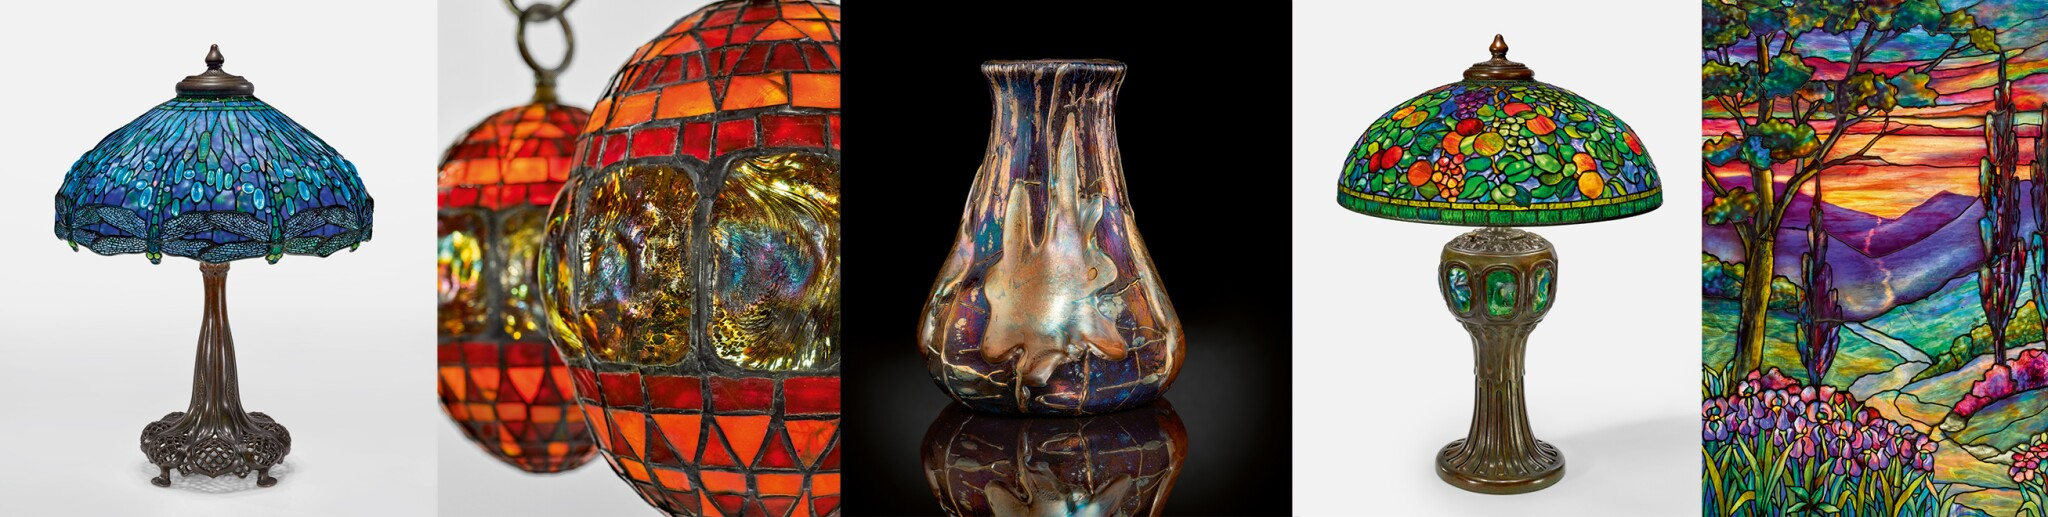 Dreaming in Glass: Masterworks by Tiffany Studios